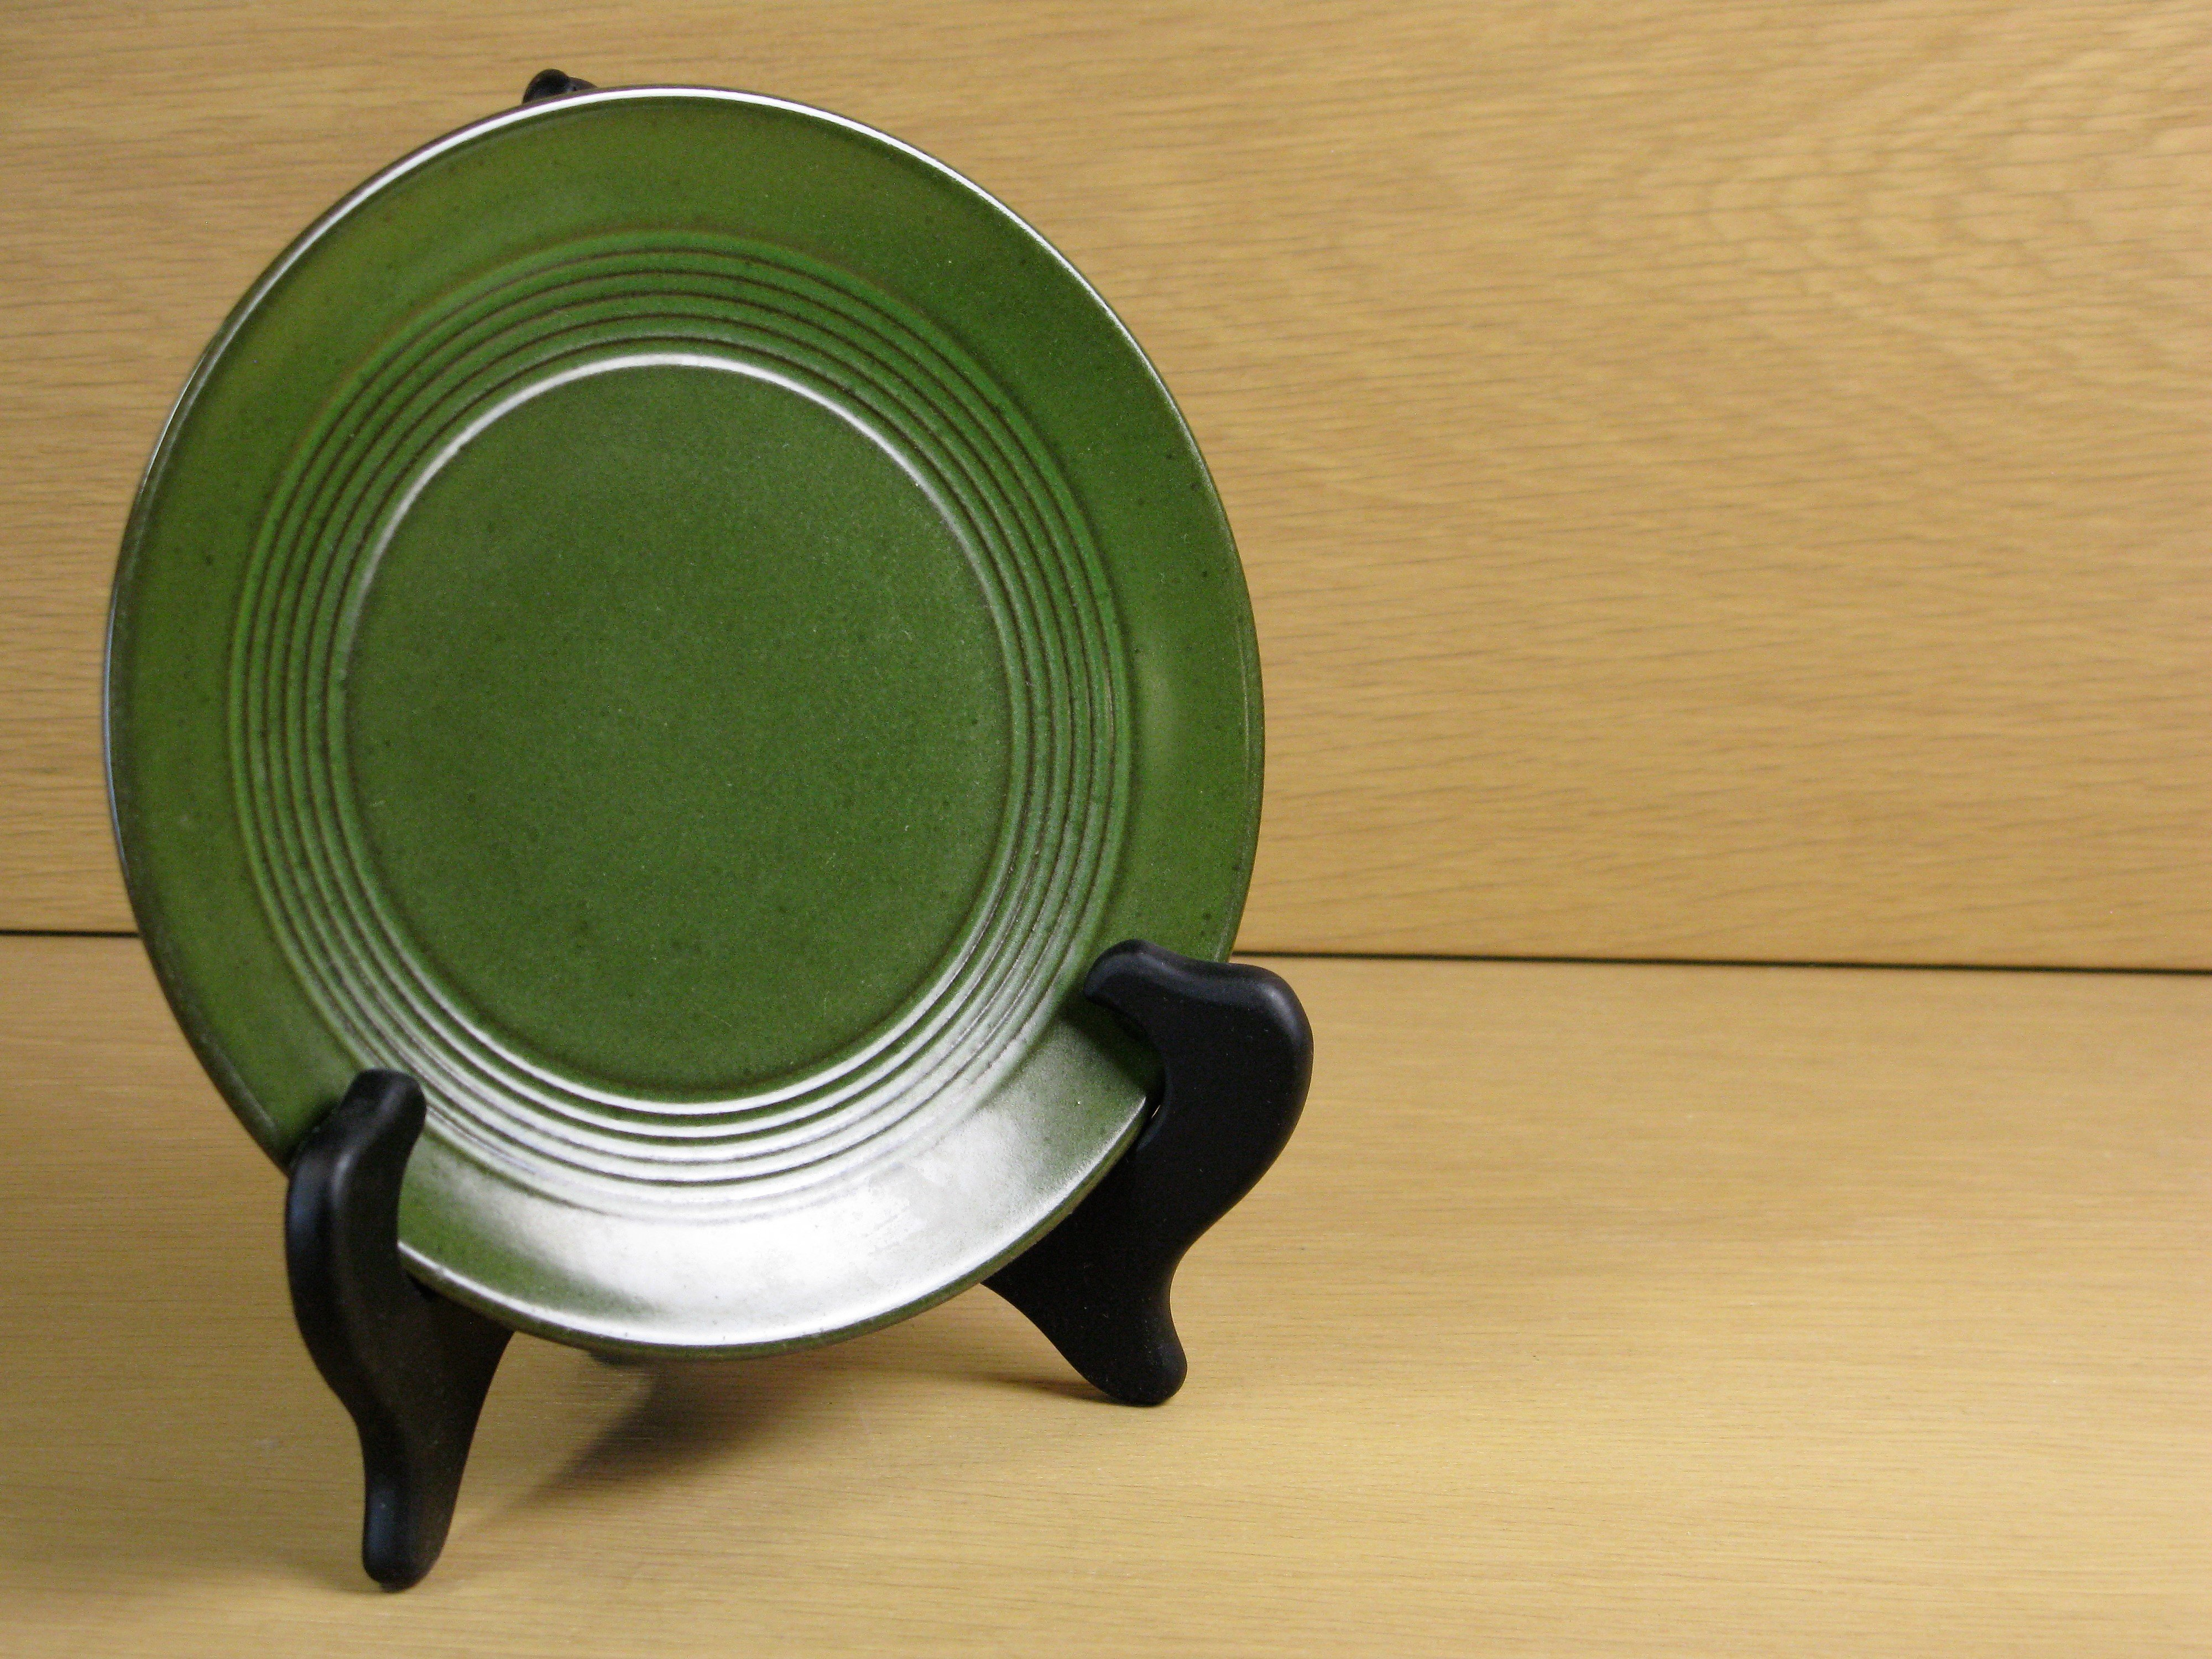 green small plate 43130/31